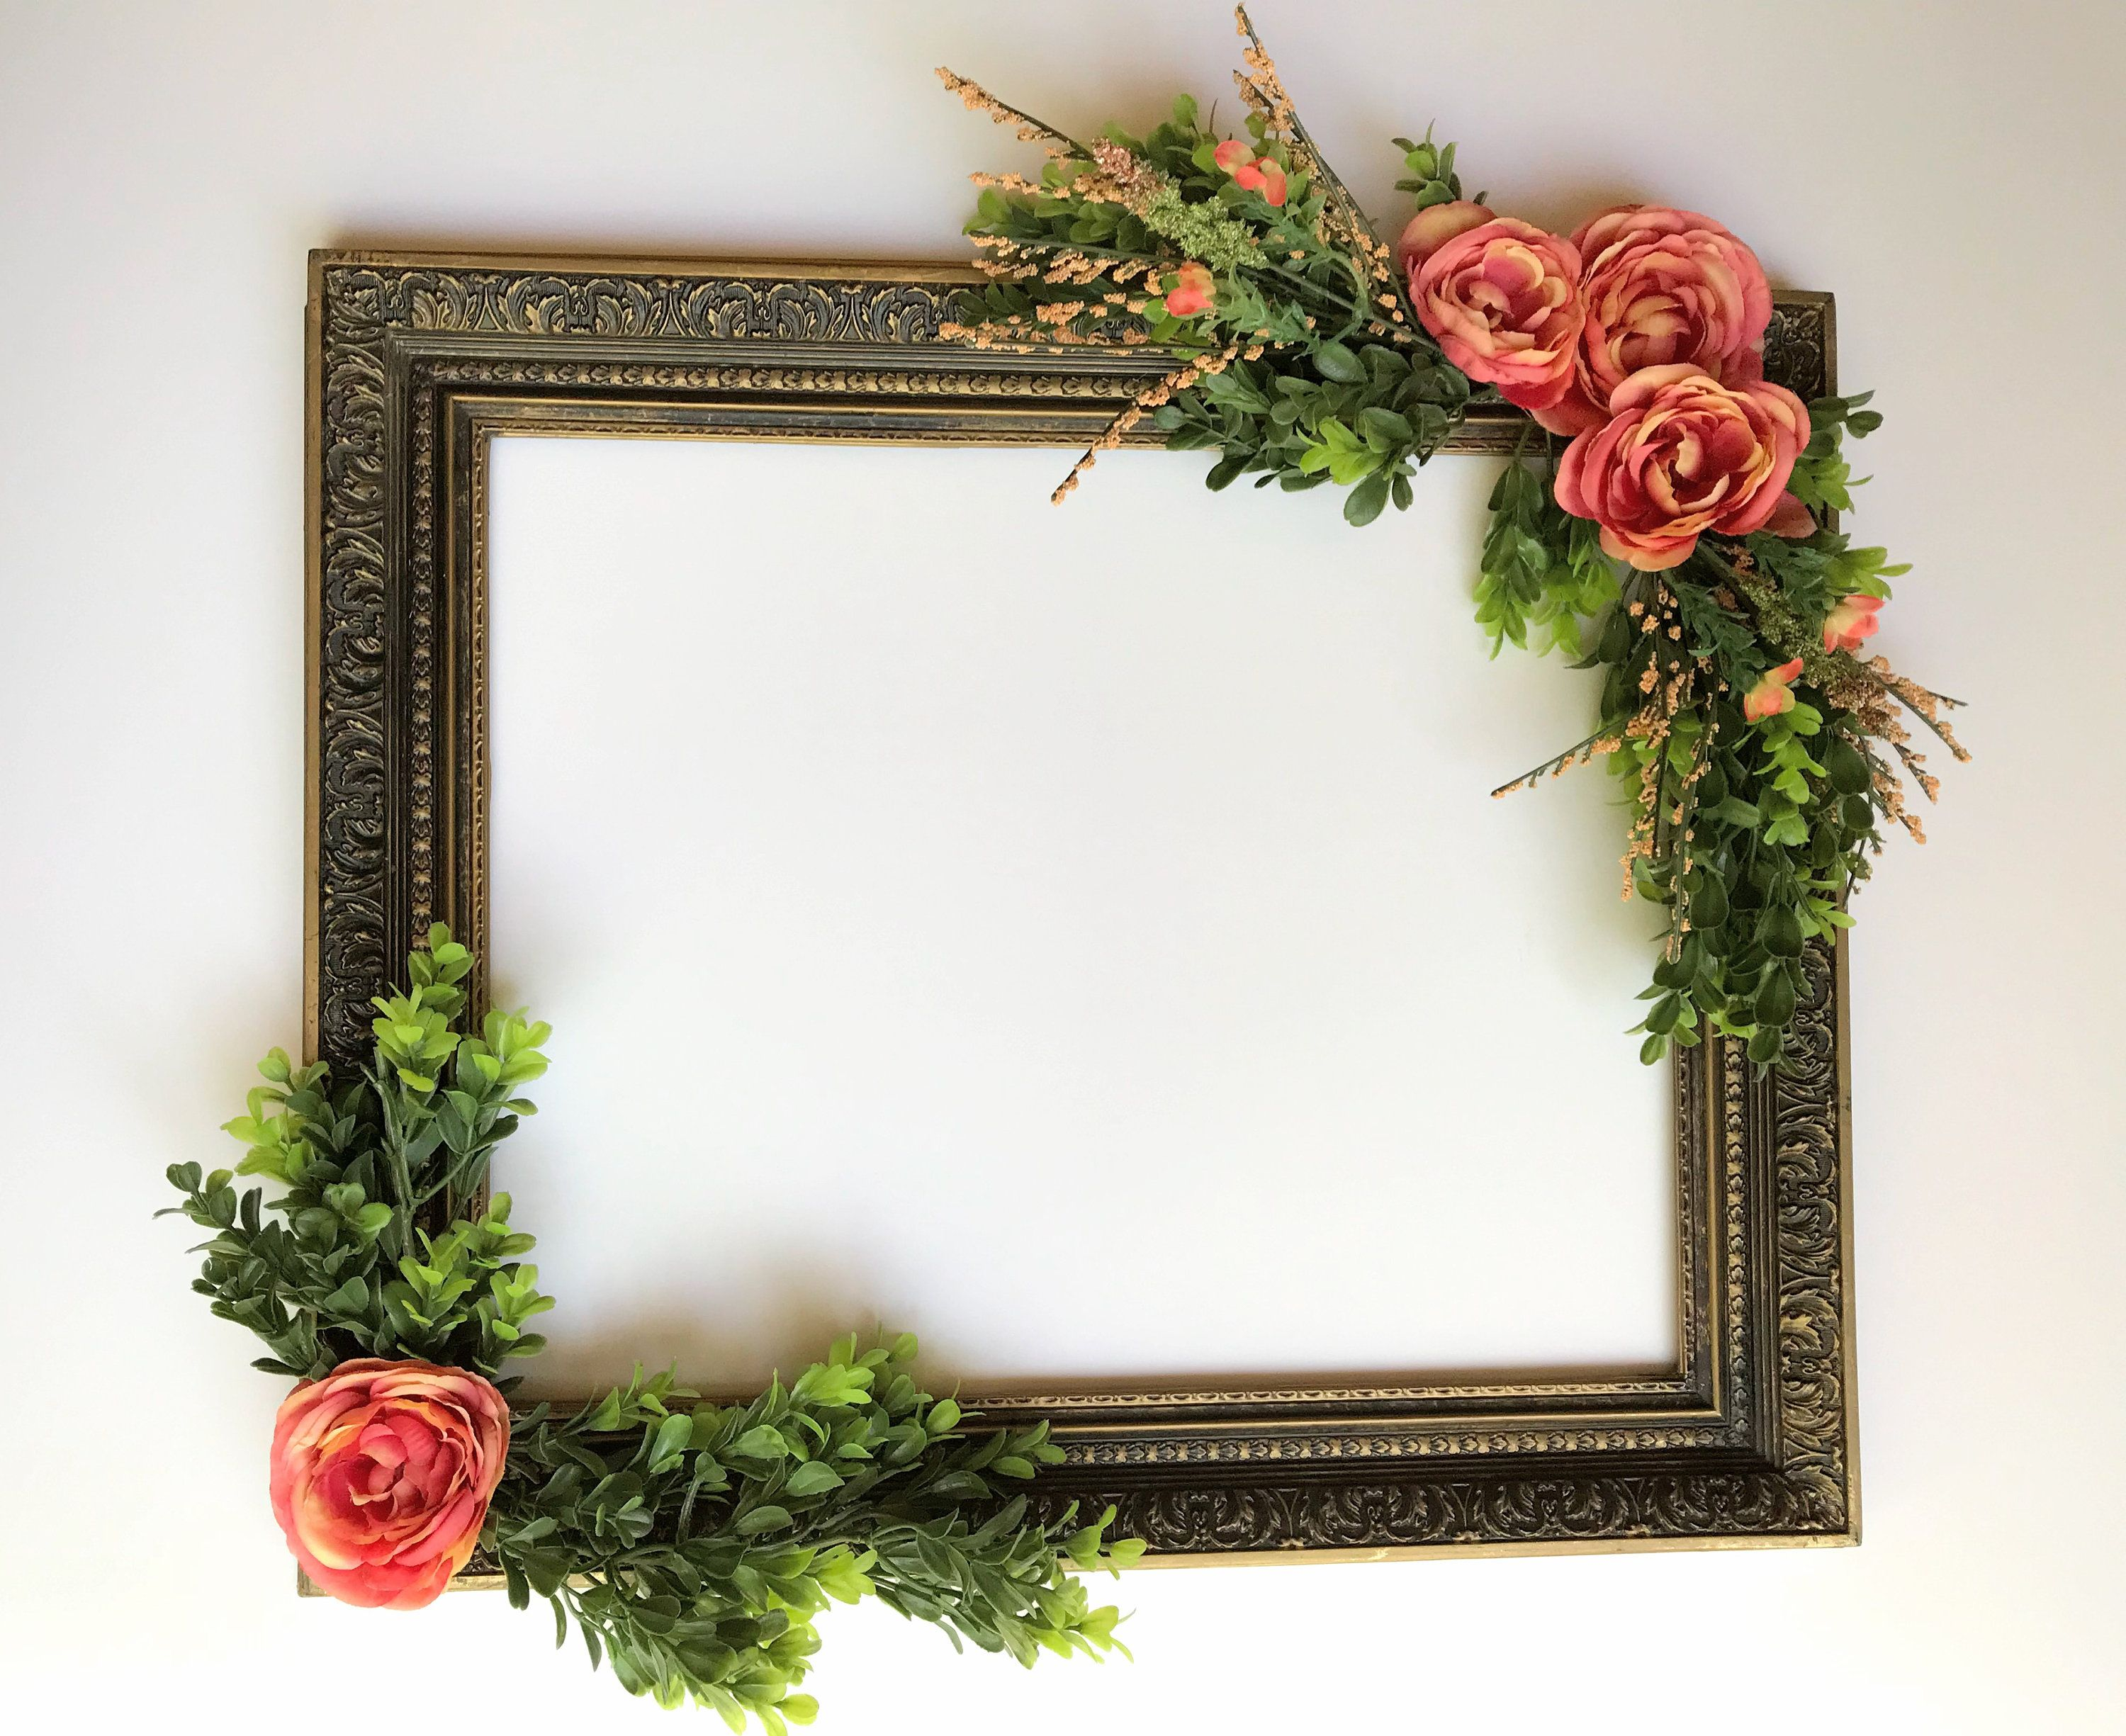 Wedding decorations at home  Decorated Floral Distressed Bronze Frame PlasticWedding